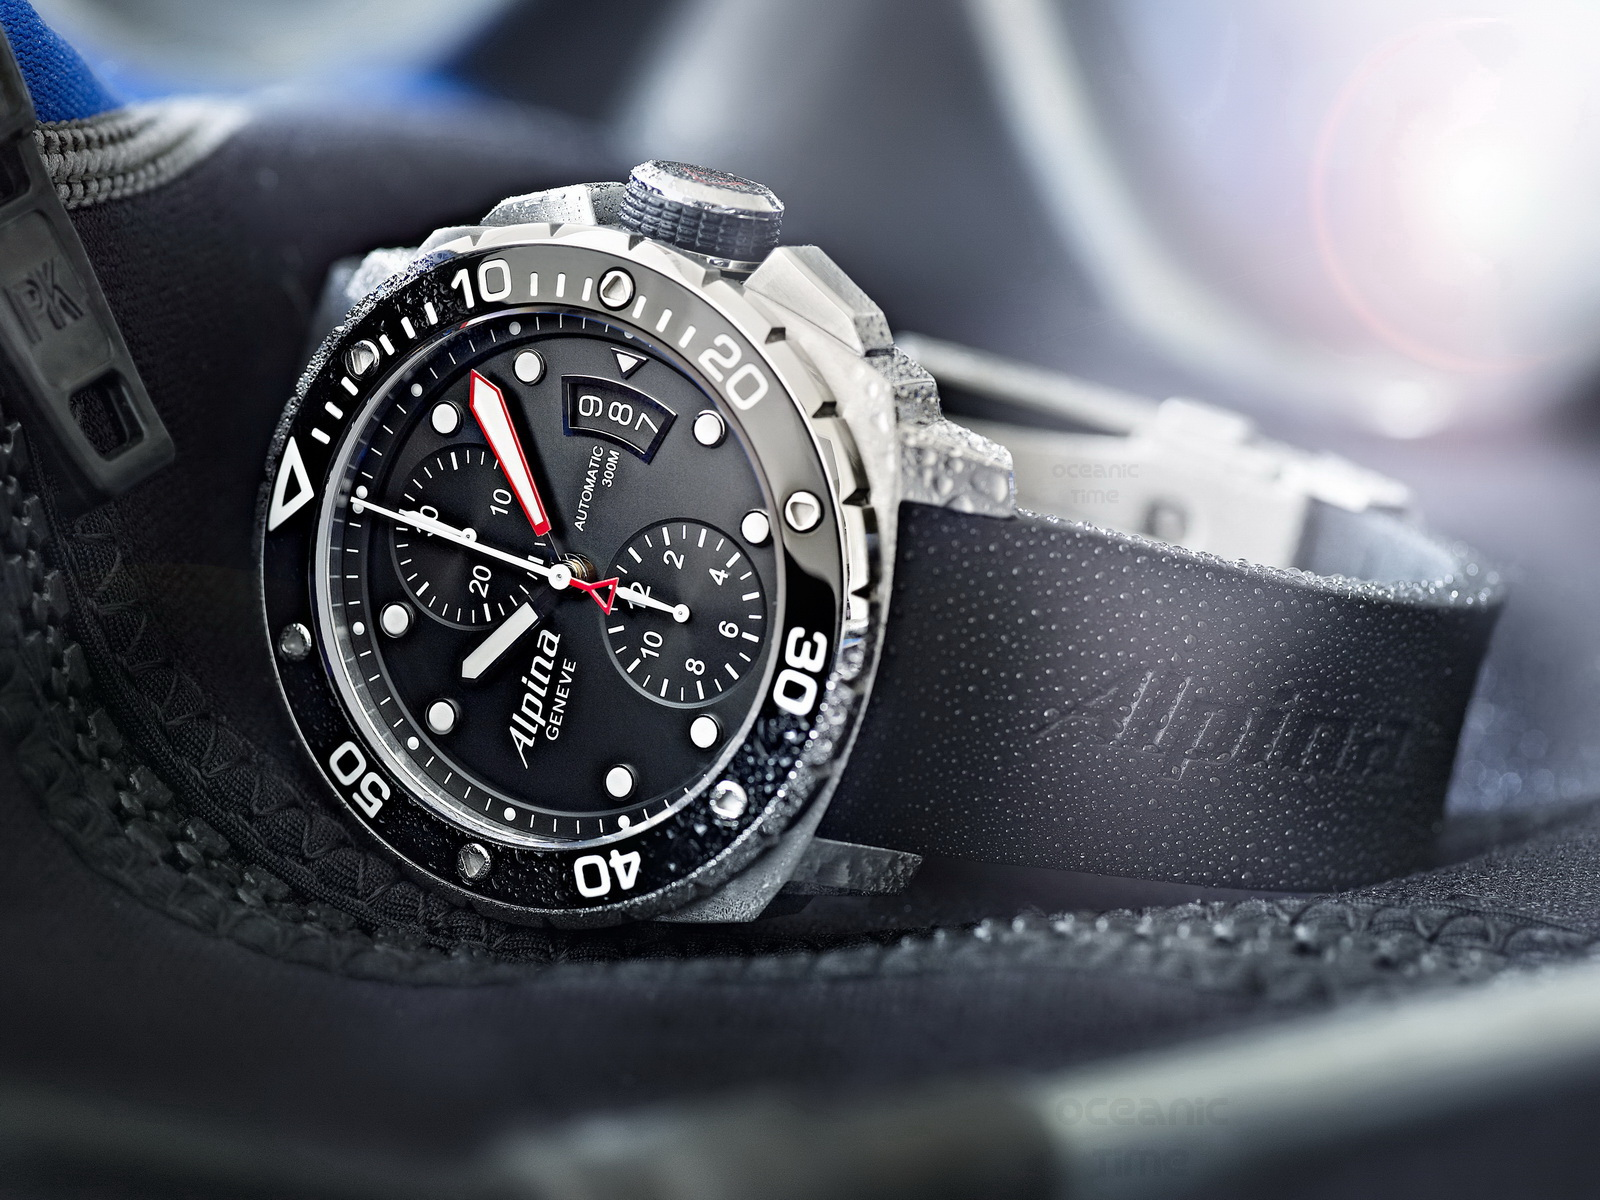 All Best Watches ALPINA Extreme DIVER Chronograph AUTO - Alpina diver watch